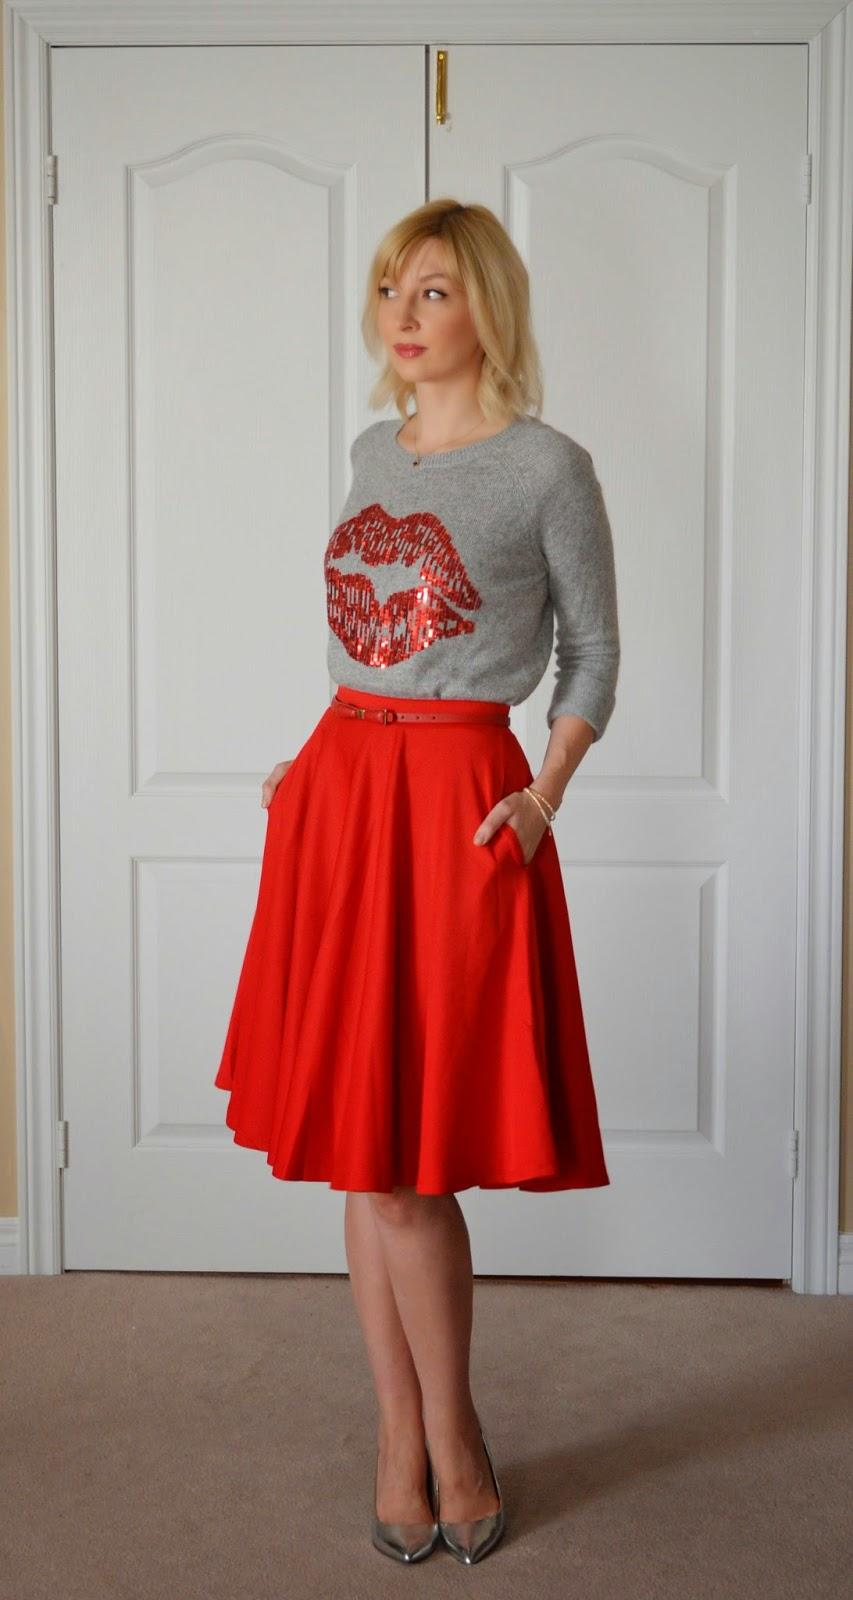 Style, midi skirt, red skirt, red lips, lips sweater, Christmas, winter, winter style, Asos, H&M, red skirt tryle, how to style red skirt, red midi skirt, midi skirt, midi skirt style, asos red skirt